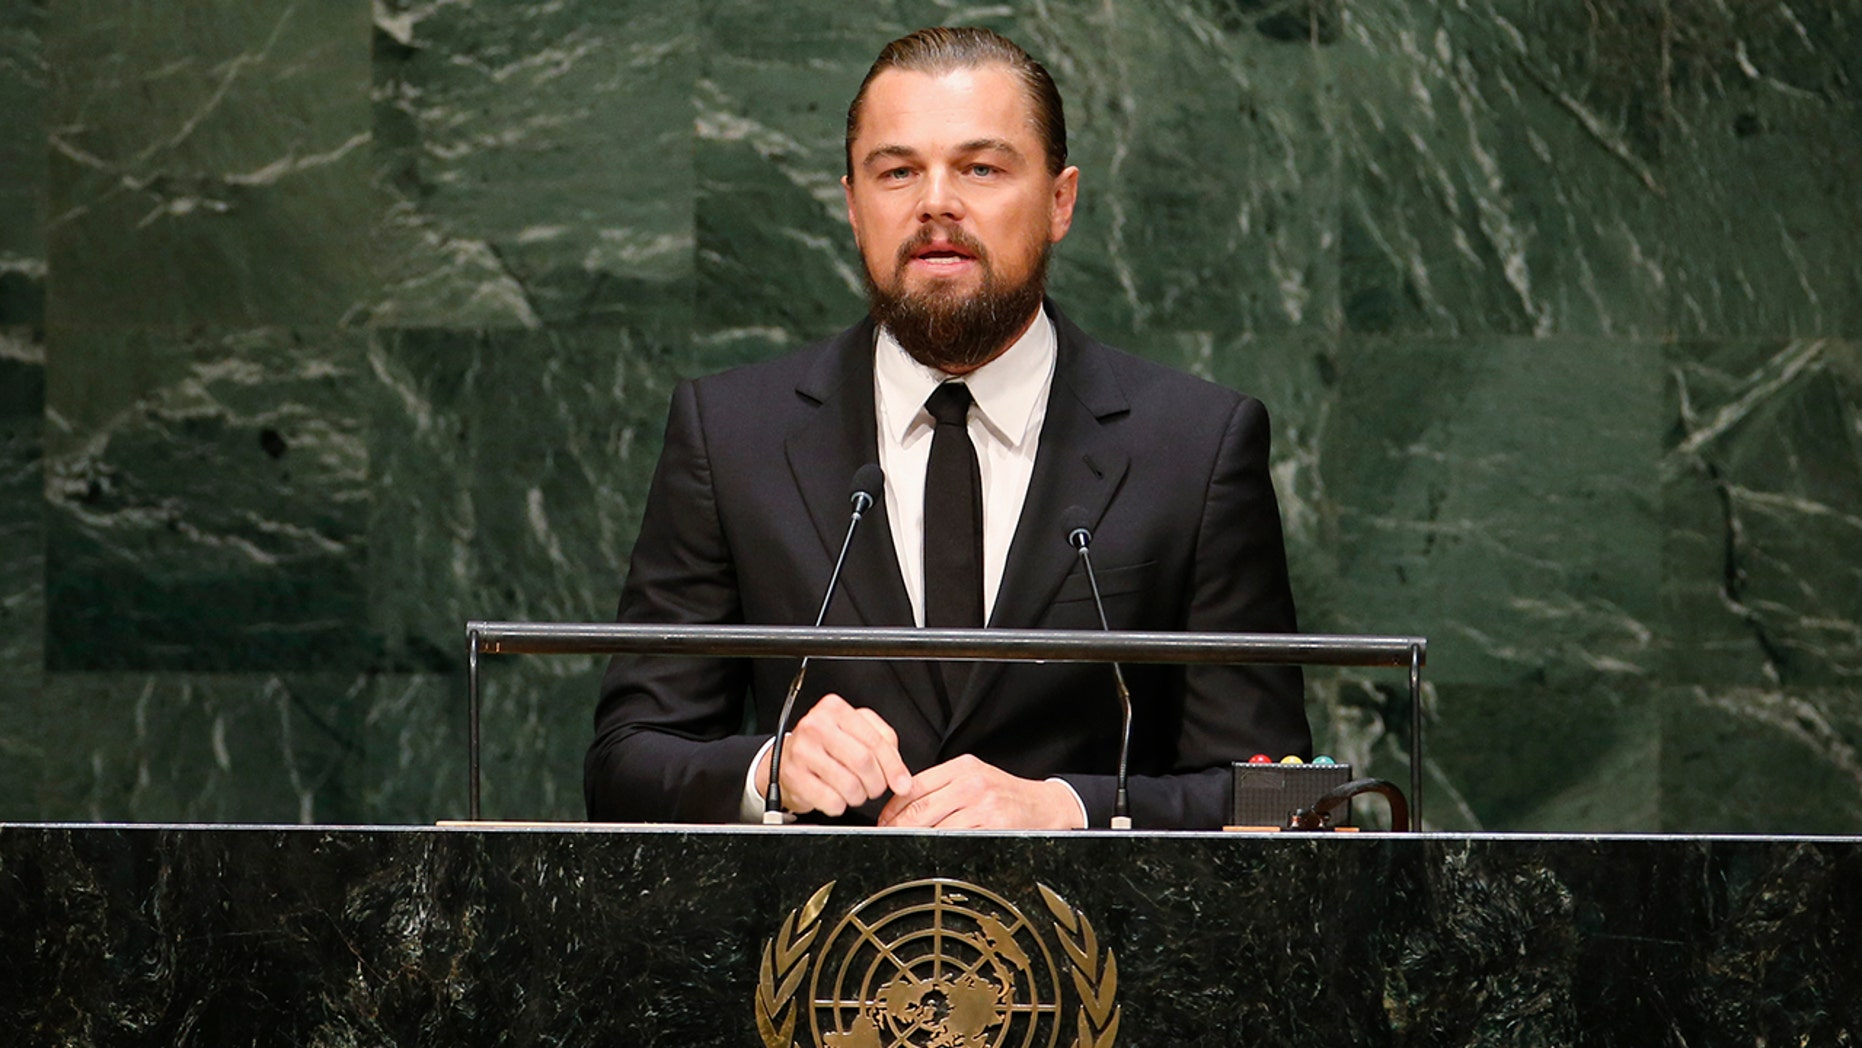 Leonardo DiCaprio is ready to offset his carbon footprint by flying commercial.